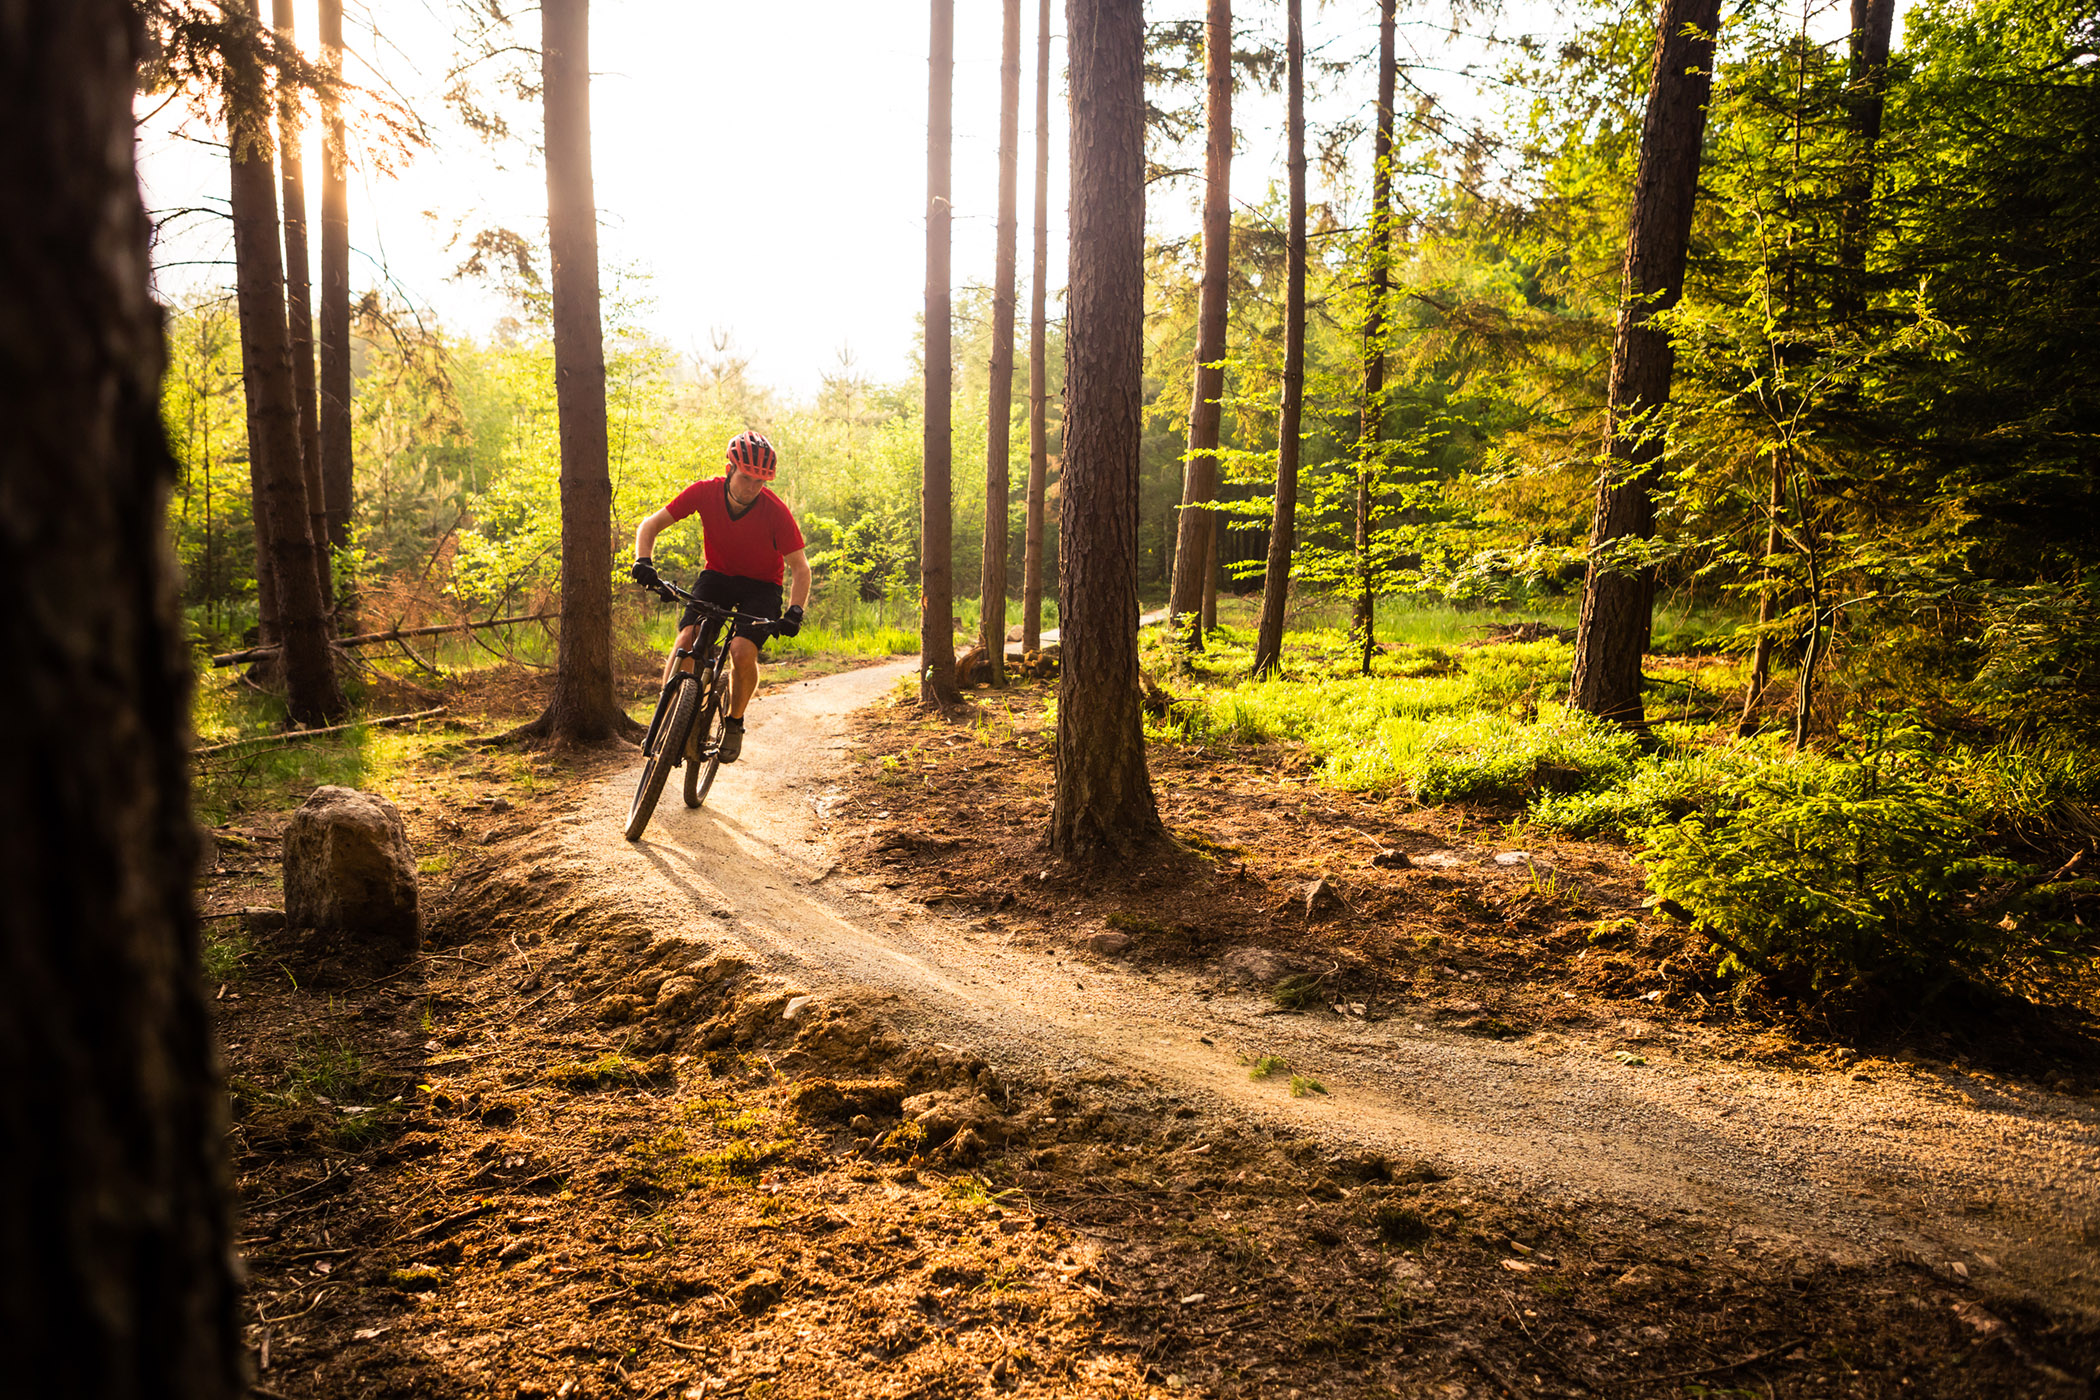 A mountain biker rides in a sunny forest on a dirt trail.